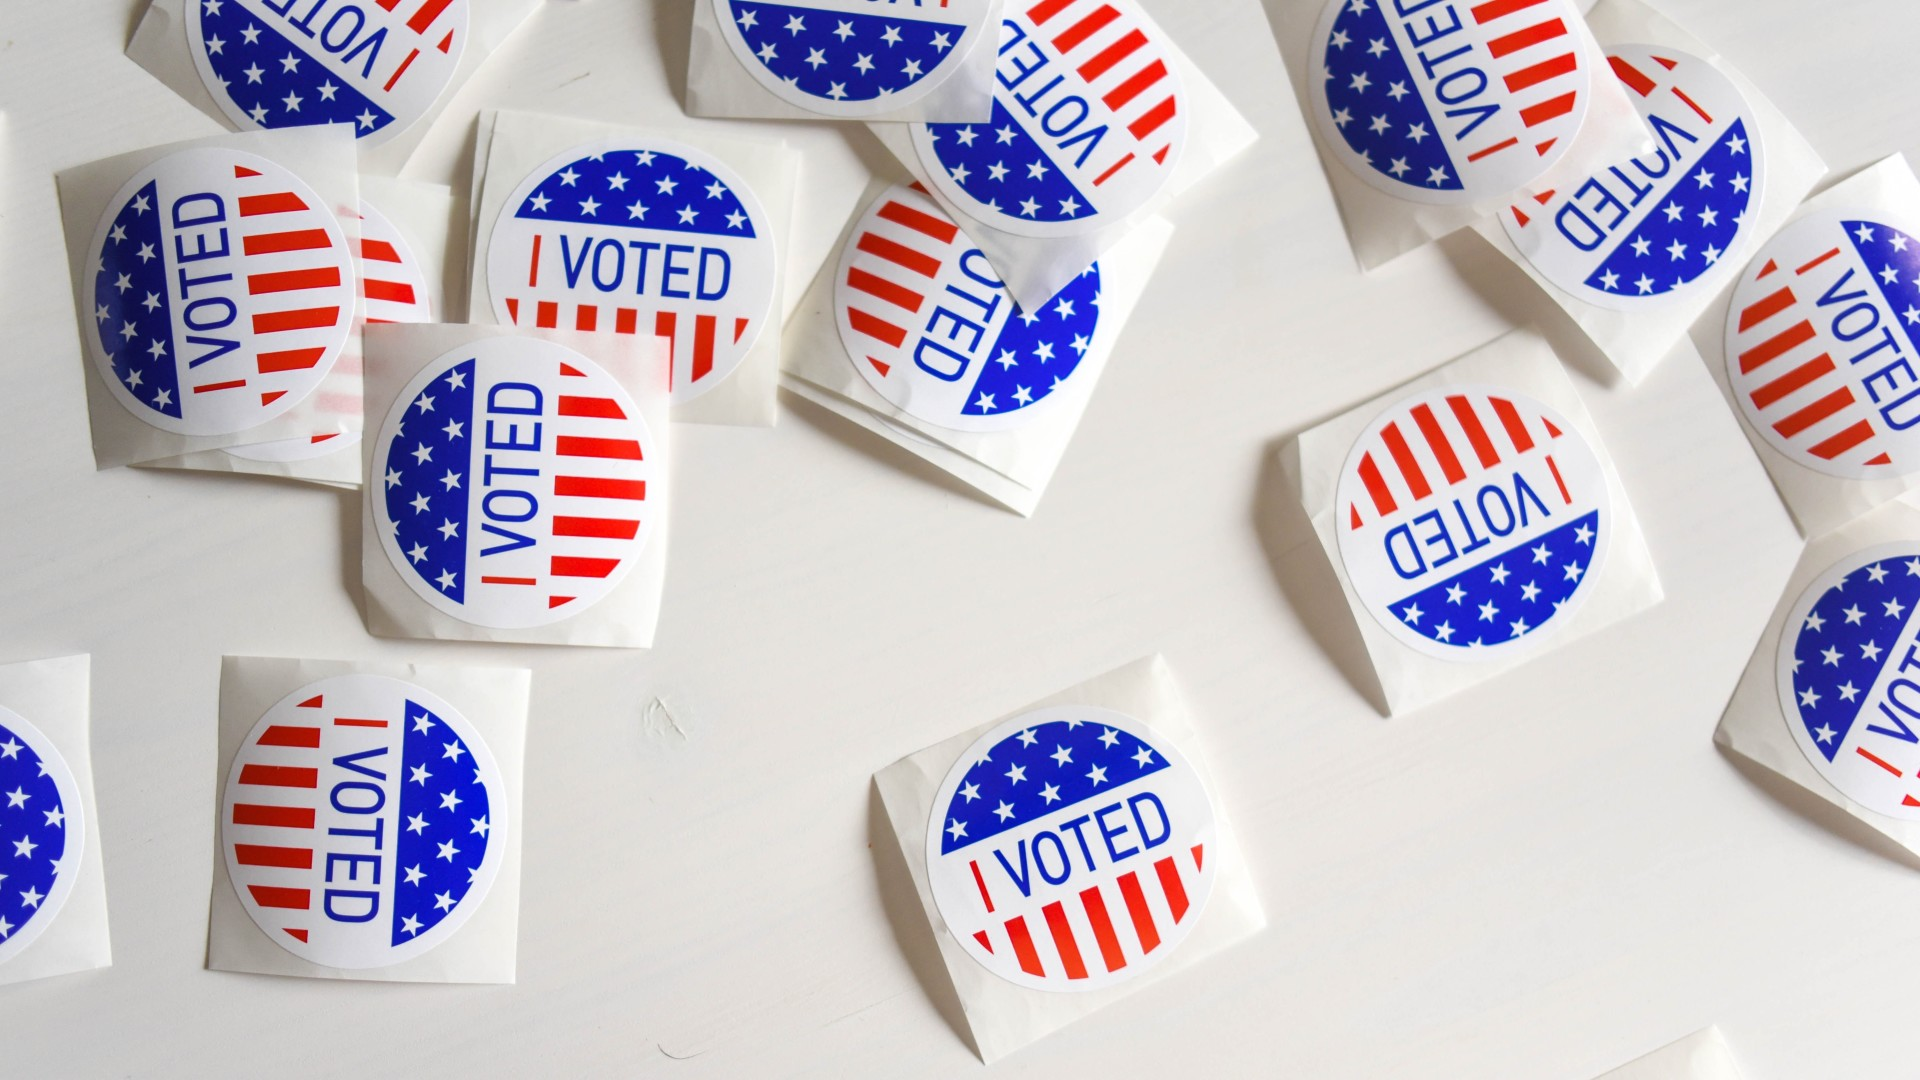 How Should Christians Vote? Hero Image